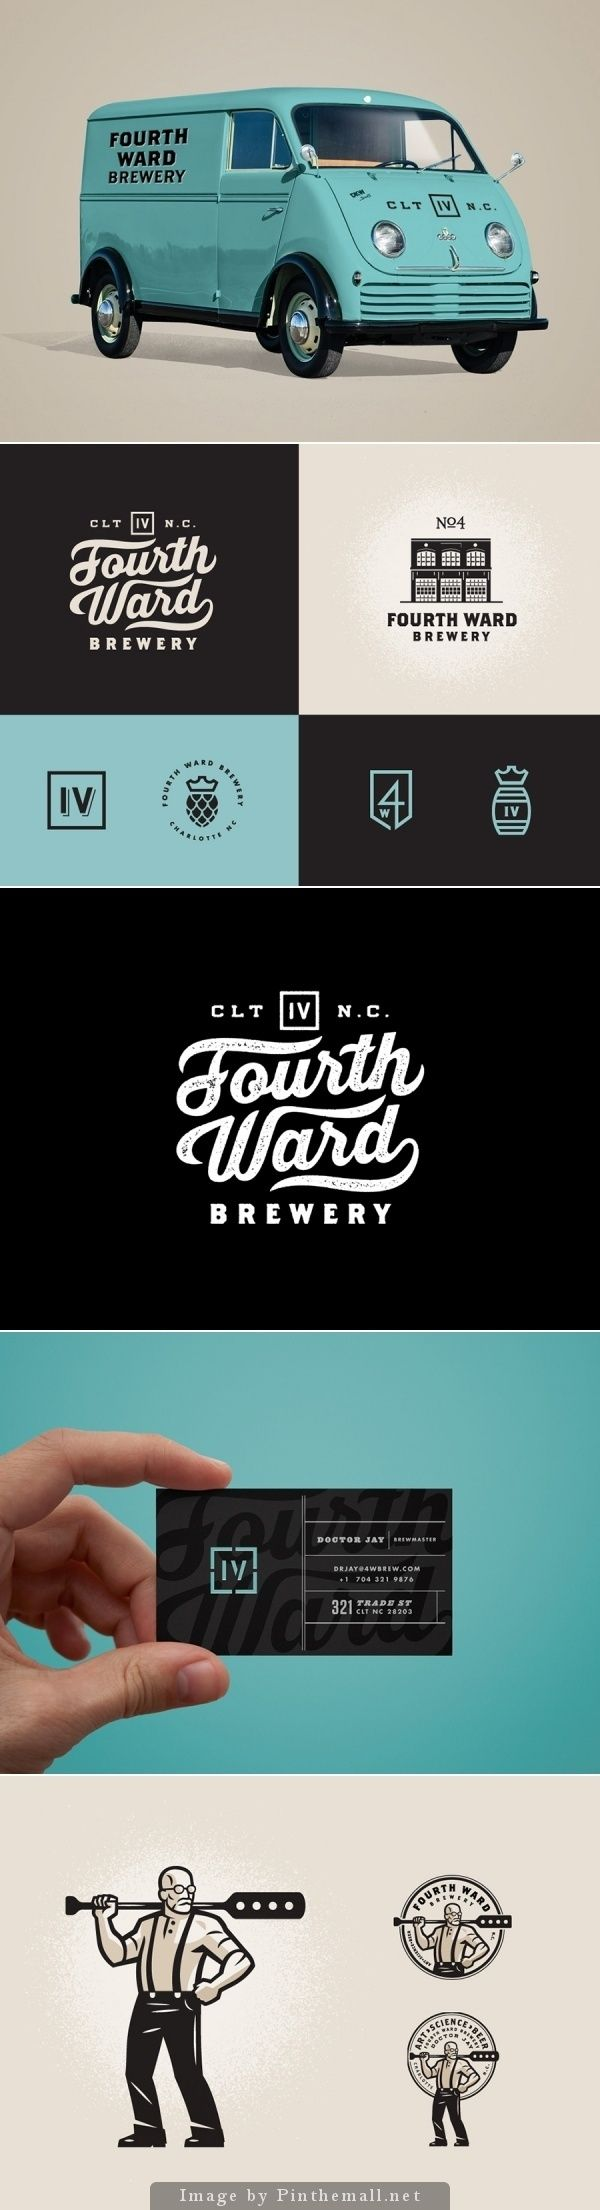 Fourth Ward Brewery Identity